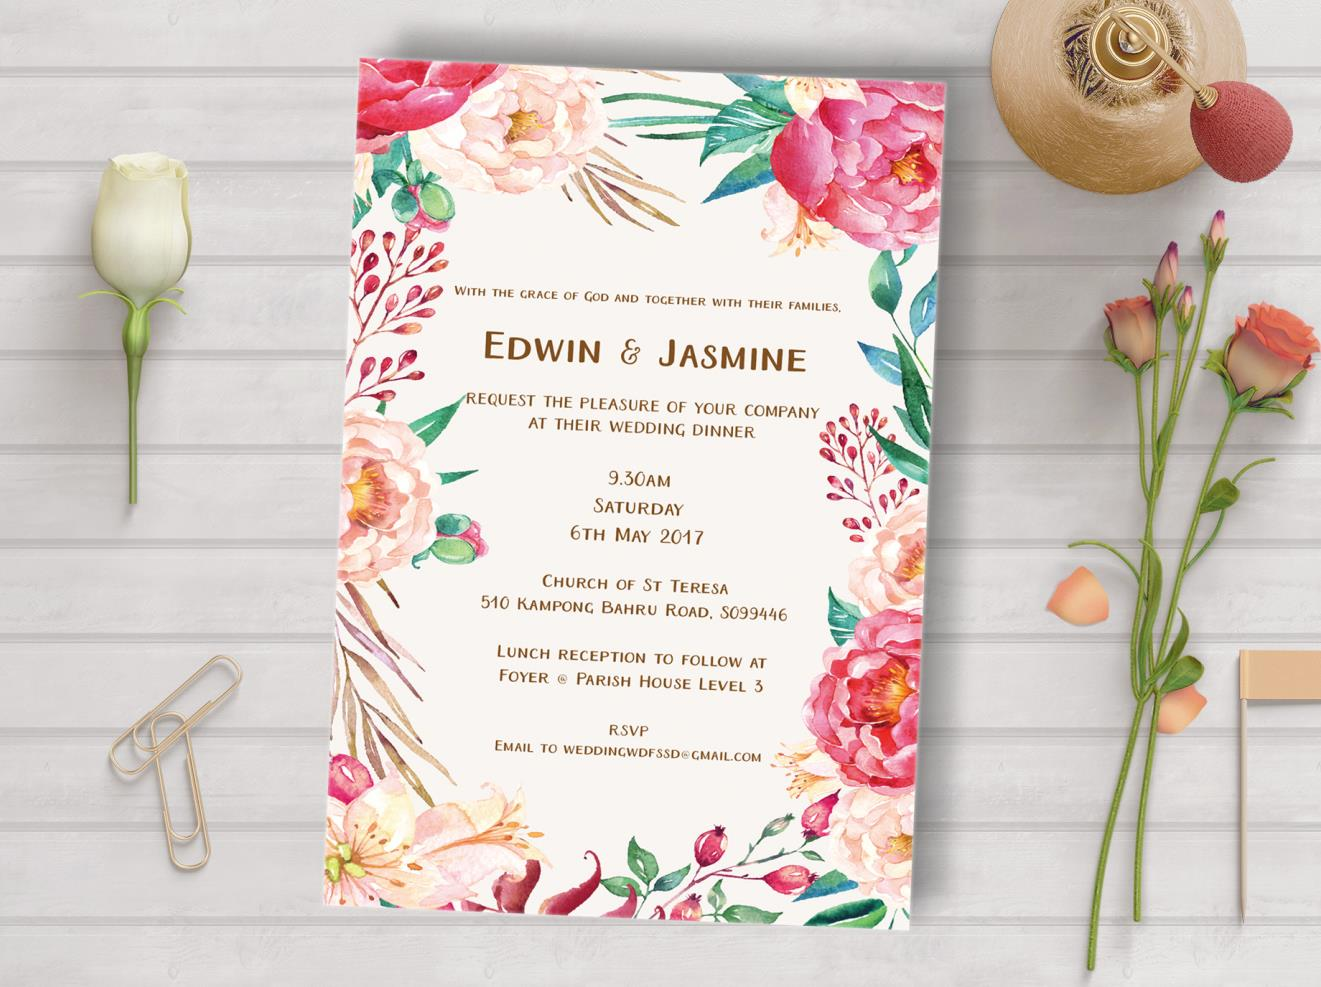 Wording For Invitations Wedding: Wedding Invitation Wording Samples & Tips